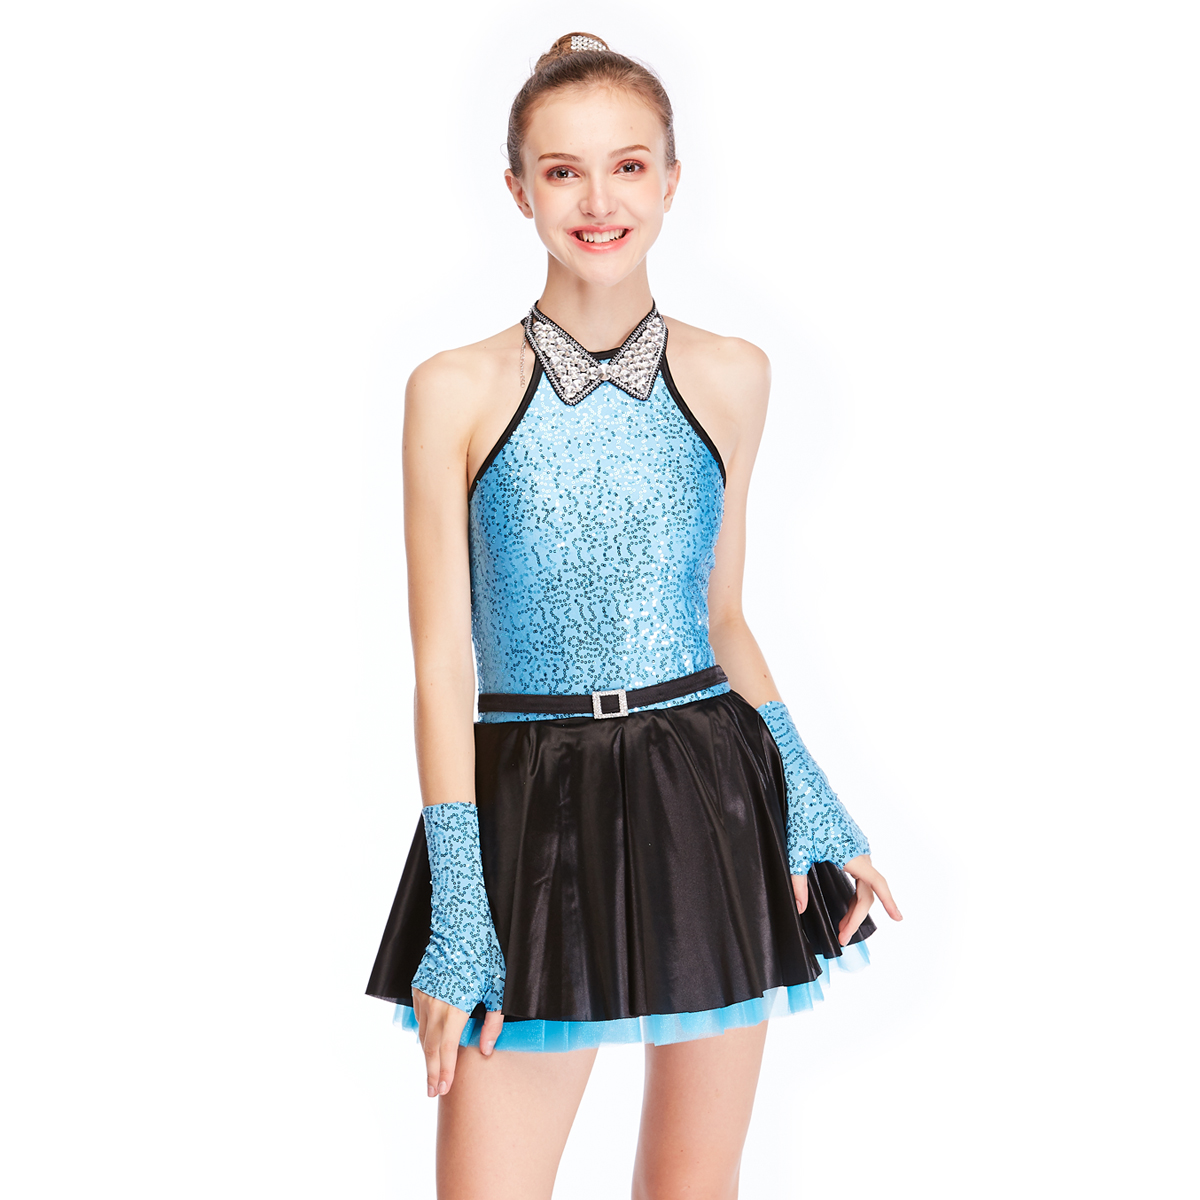 MIDEE sequins jazz costumes for competition for wholesale performance-2